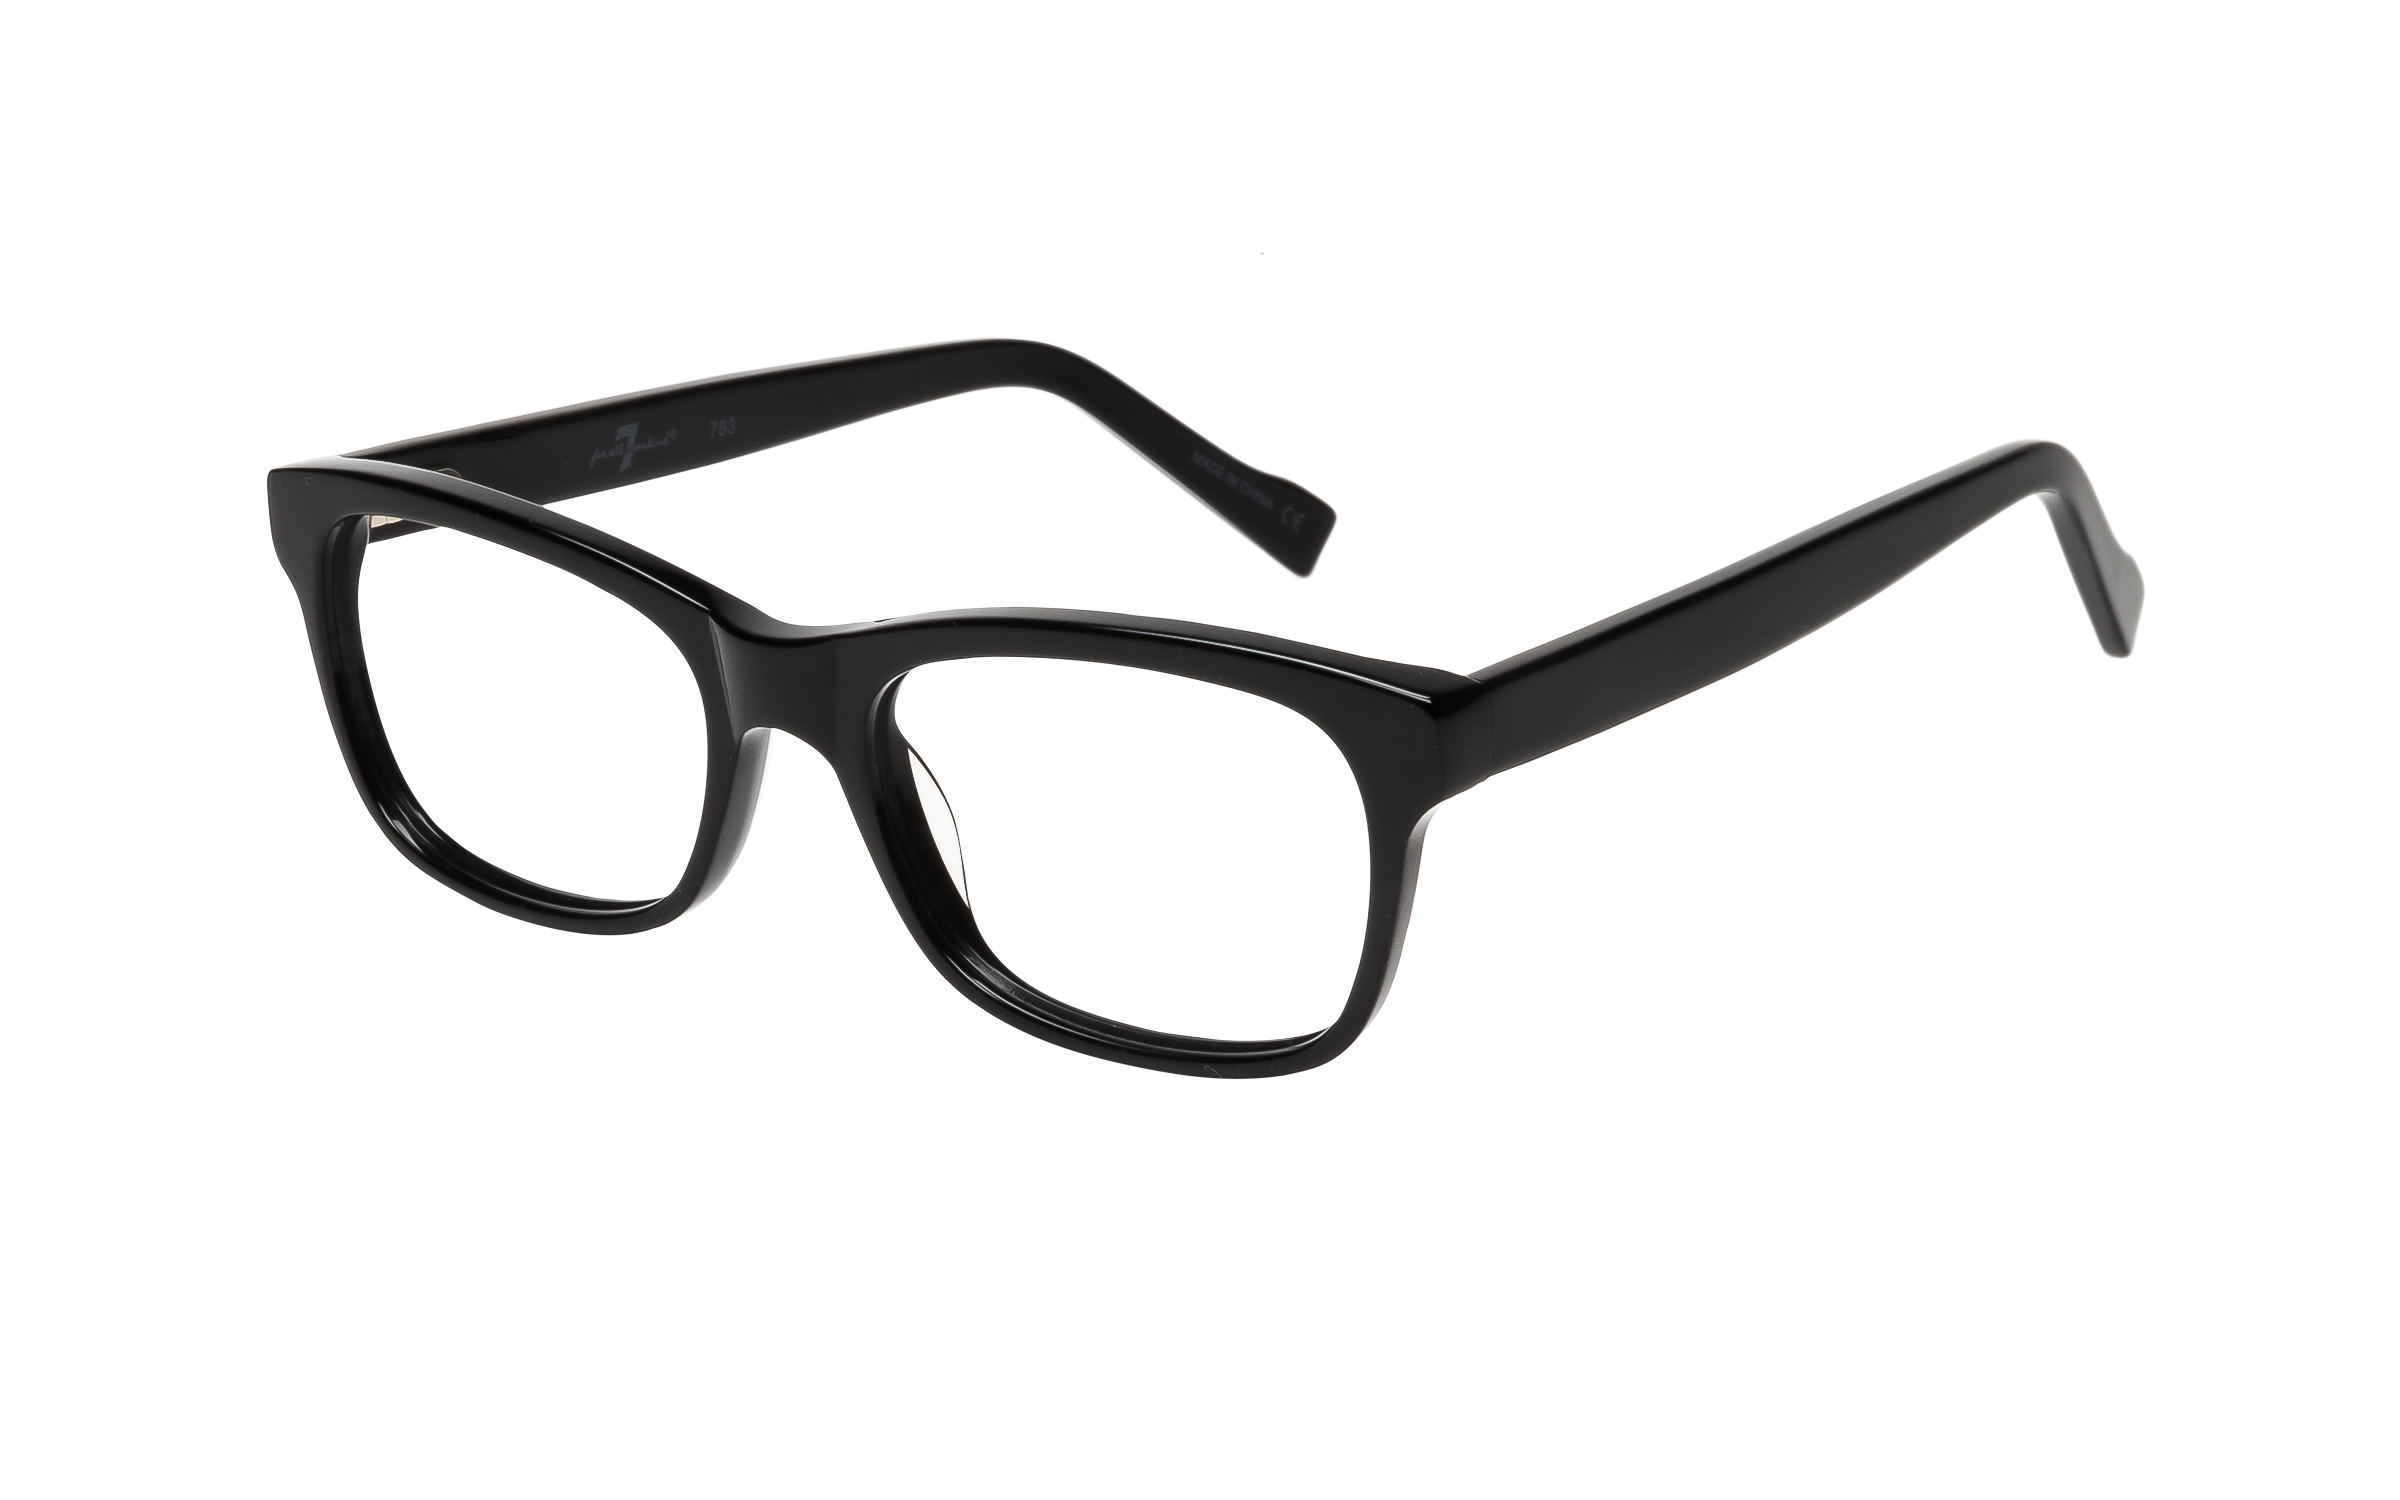 7 for All Mankind Glasses Rectangular Black Acetate Online Clearly